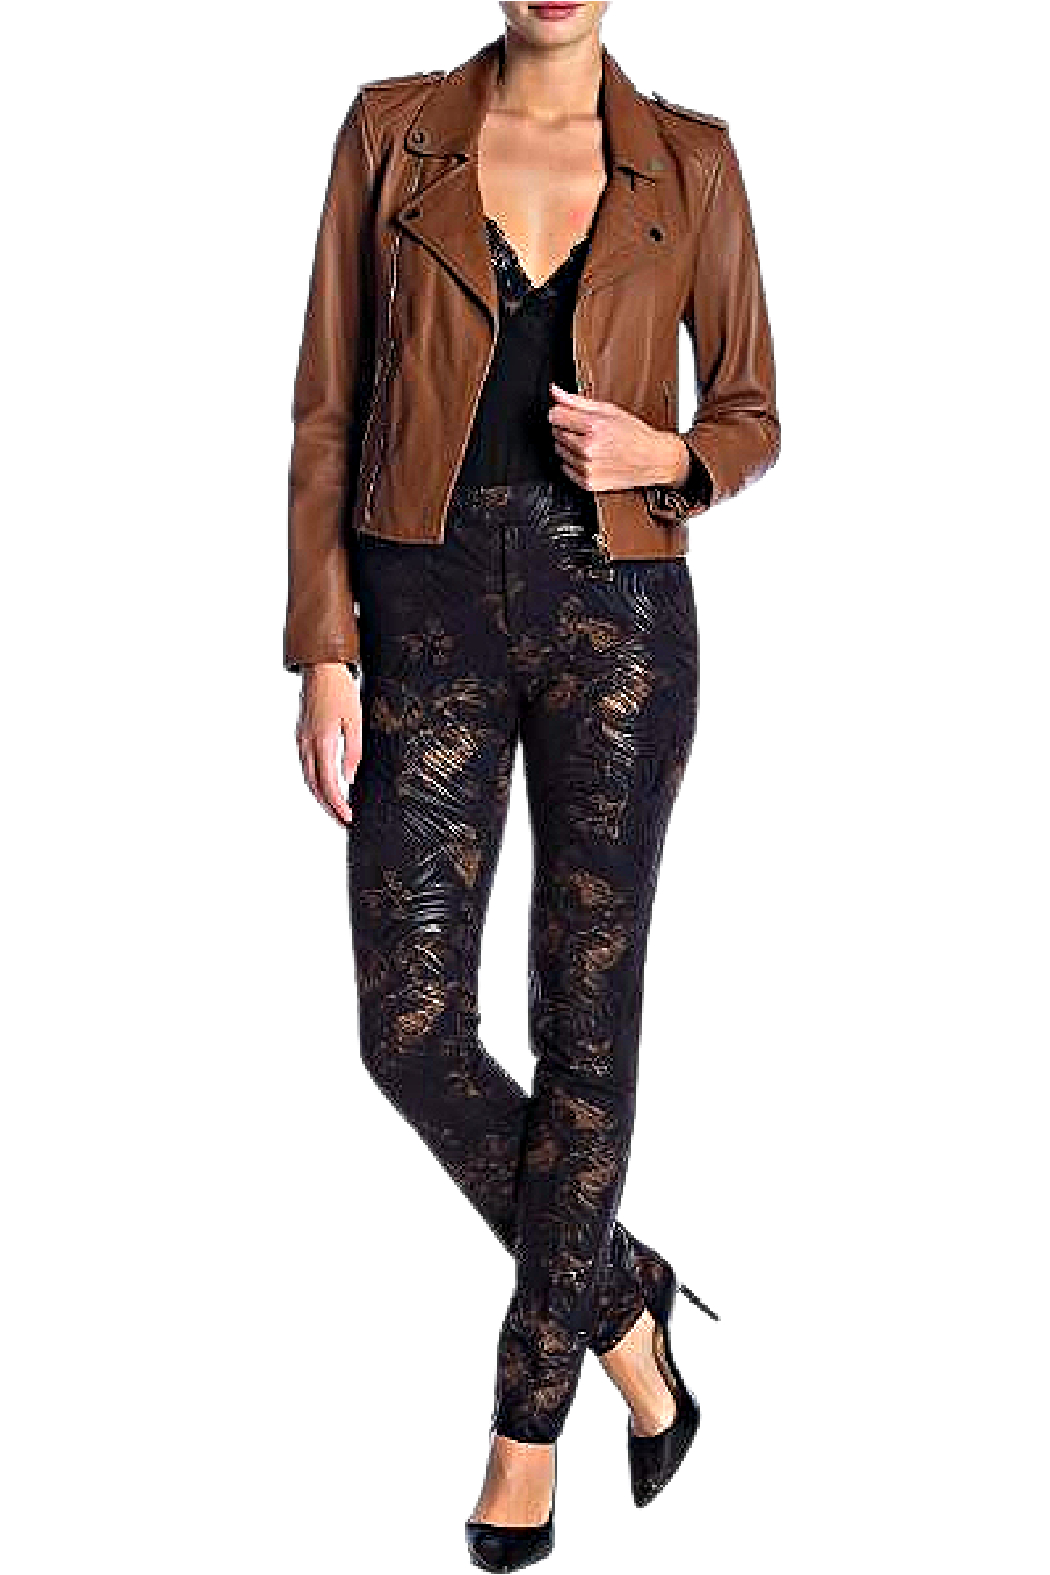 INSIGHT NYC Black With Copper Mocha Rose Scuba Pant - Main Image